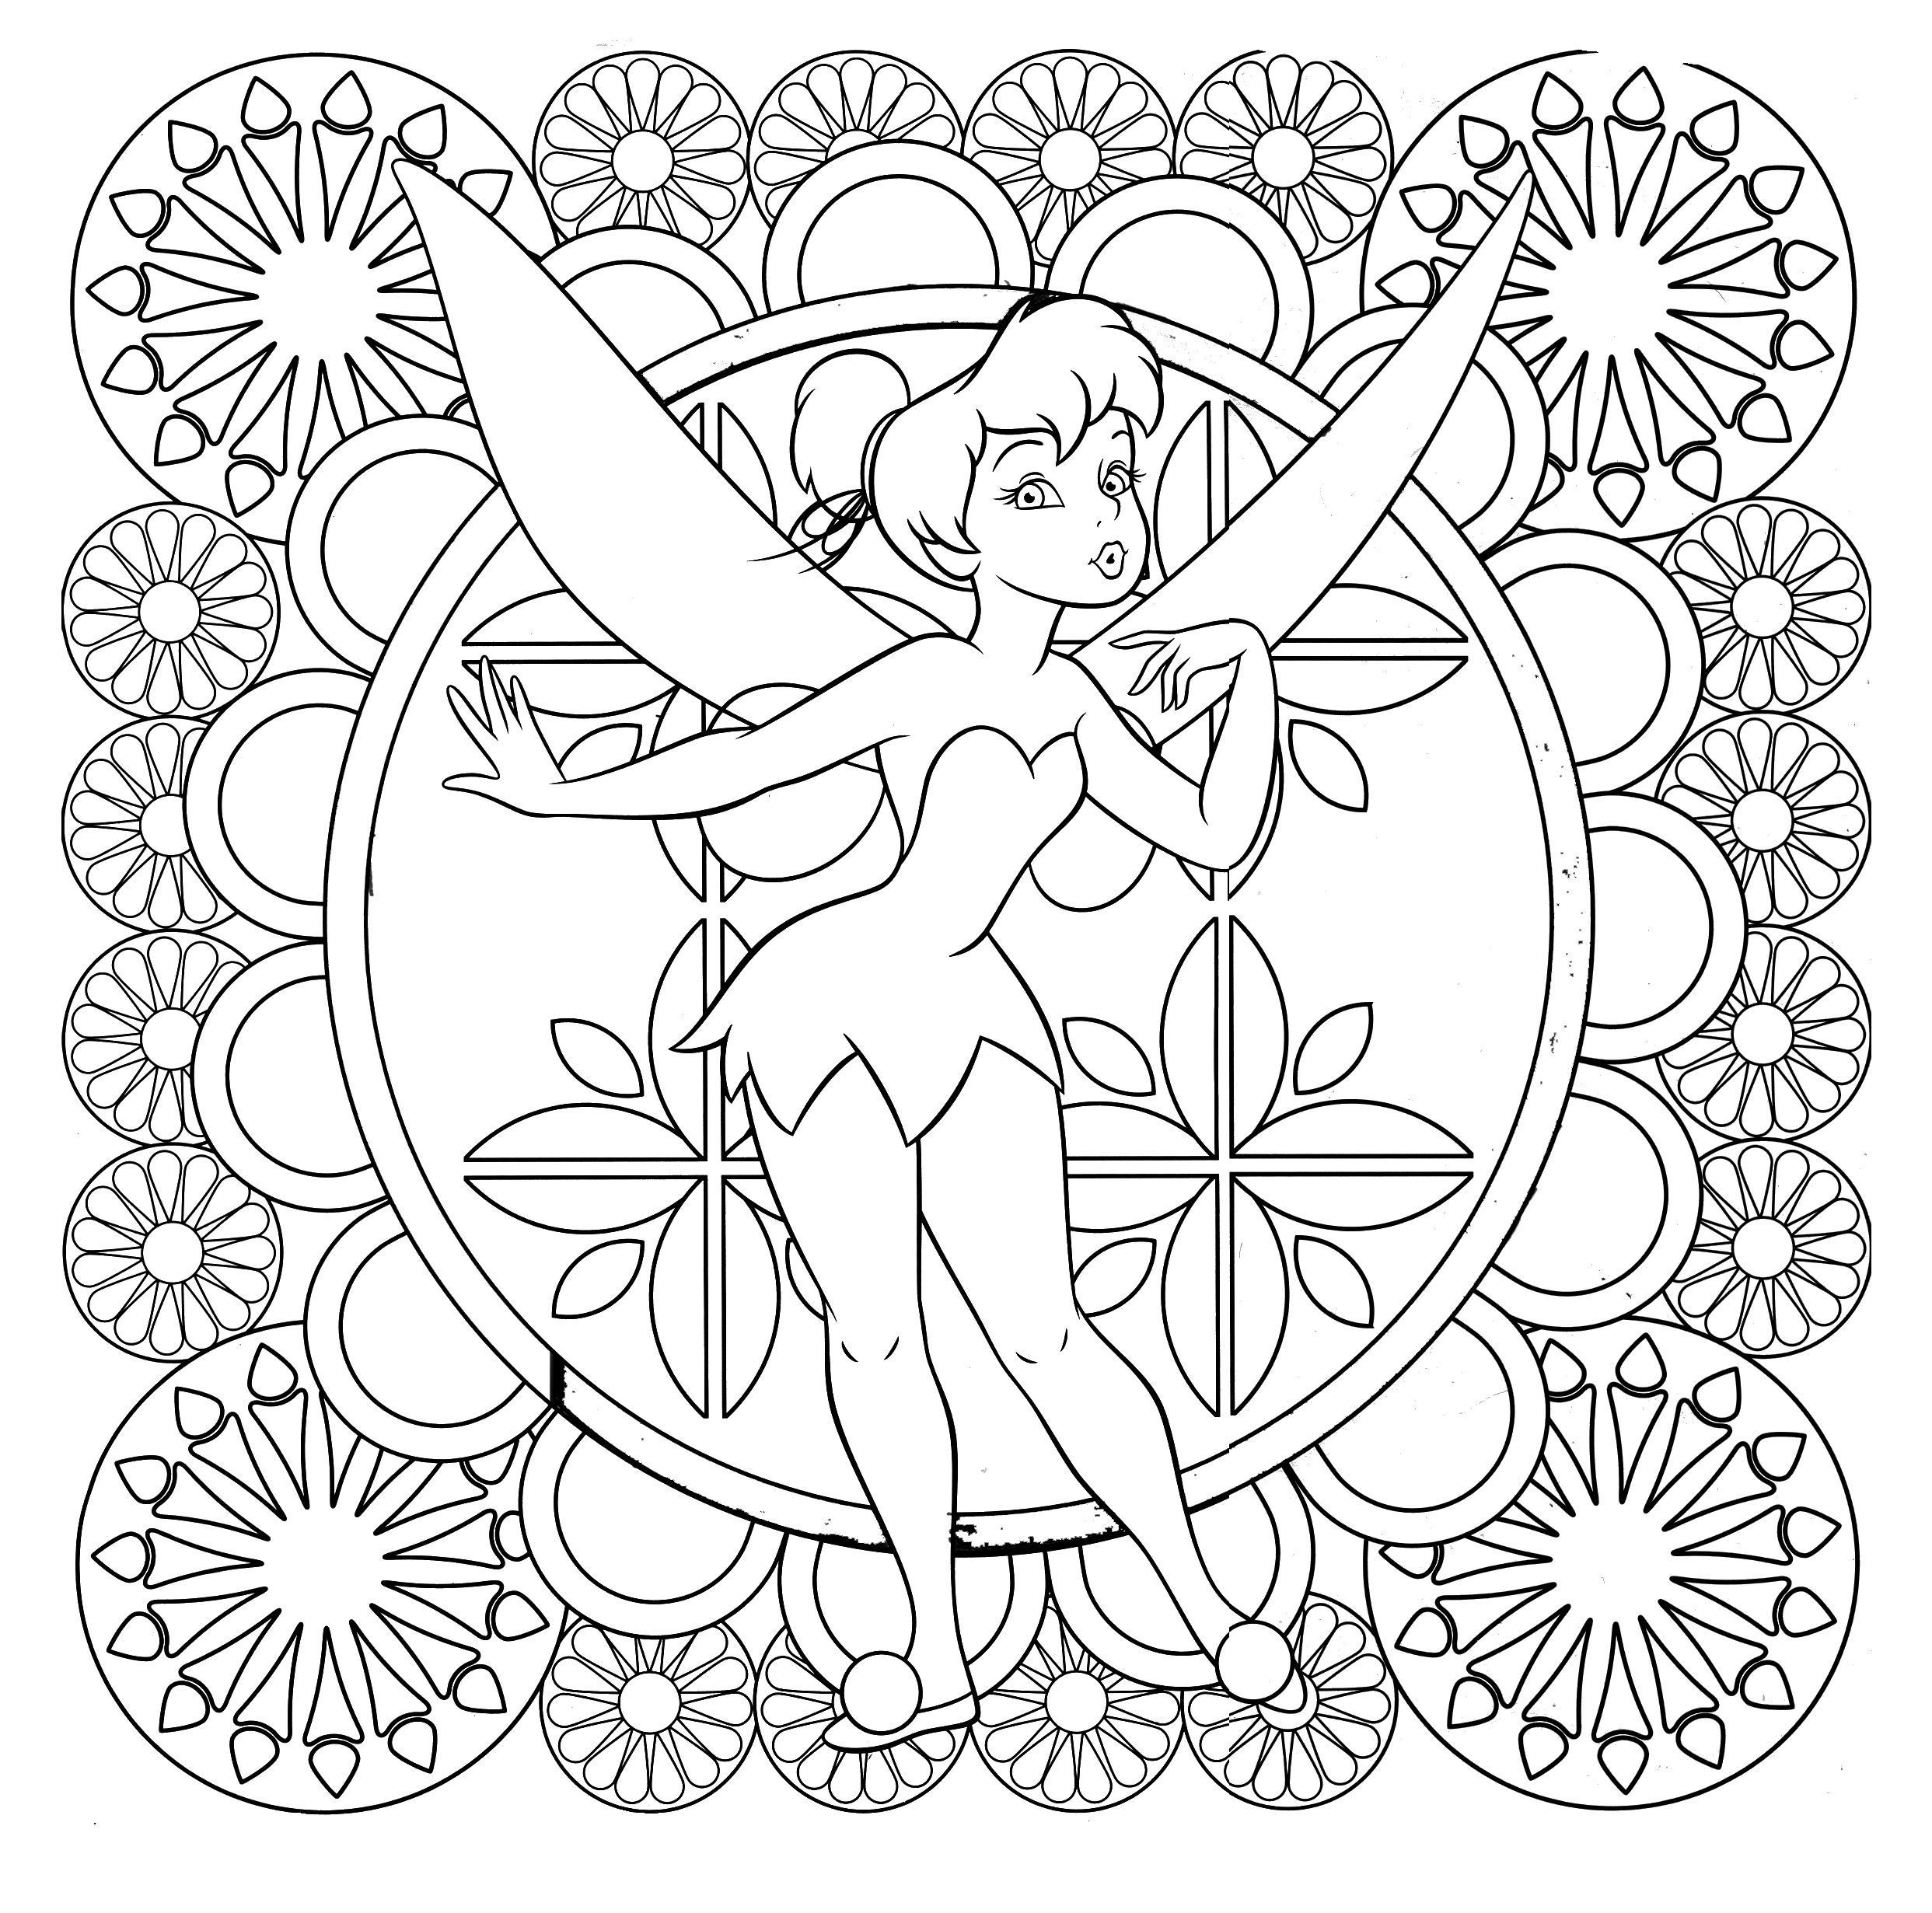 Difficult Disney Coloring Pages Tinkerbell Coloring Pages Disney Coloring Pages Cinderella Coloring Pages